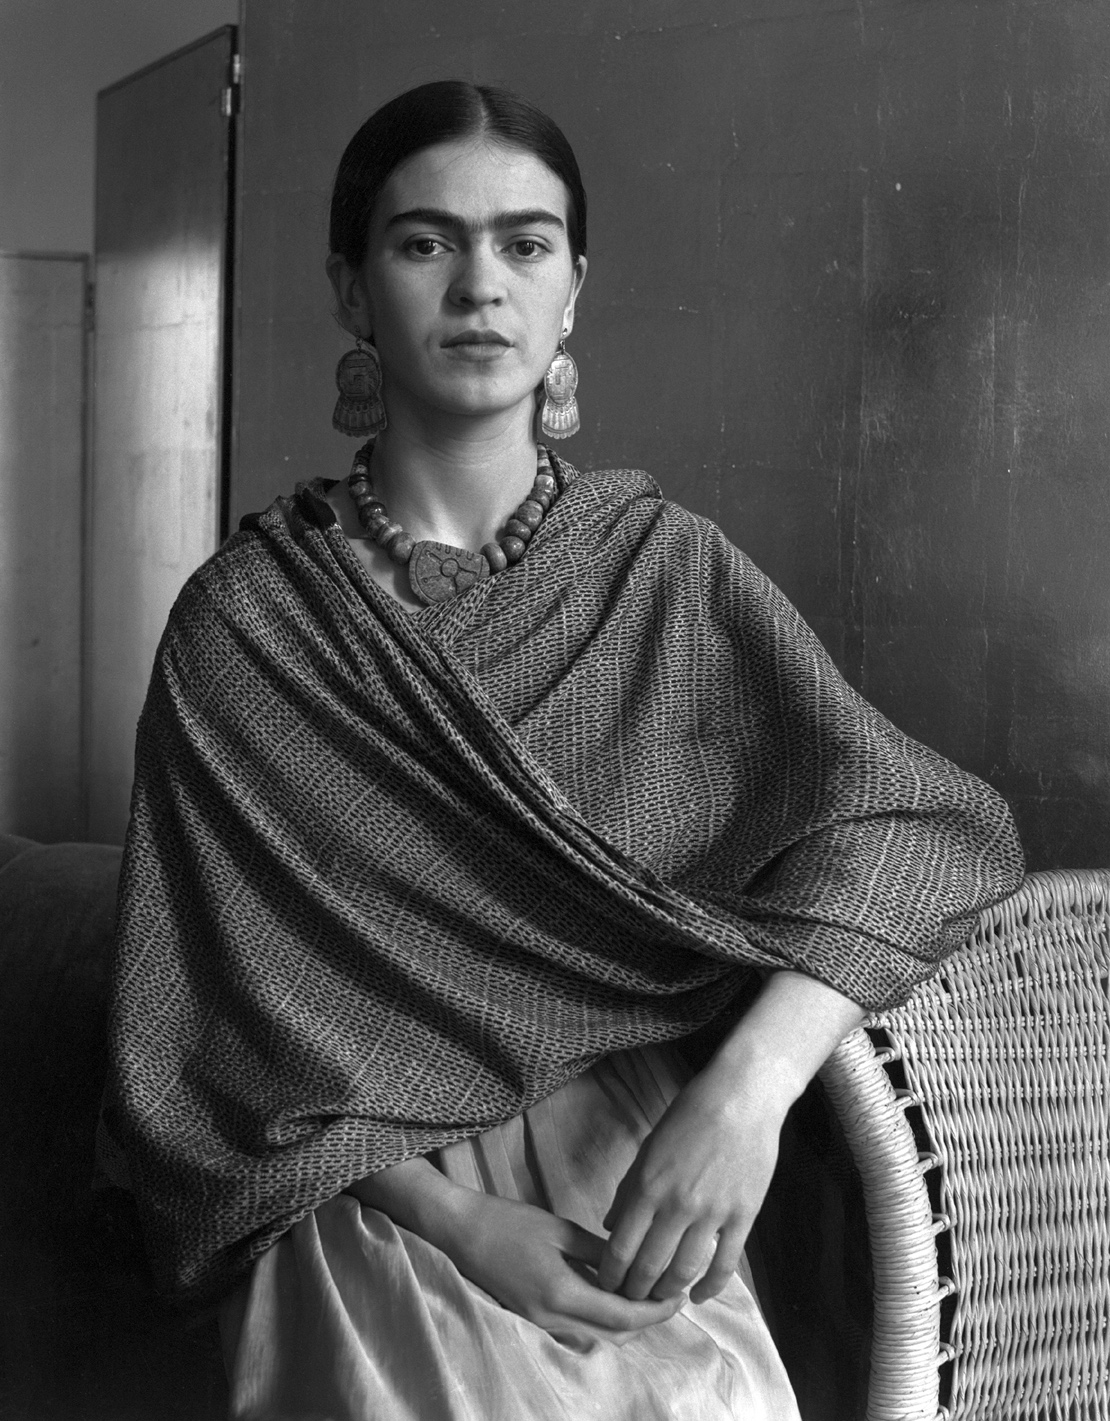 he oincidental eth andy frida kahlo the life of a mexican icon 358he oincidental ethandy